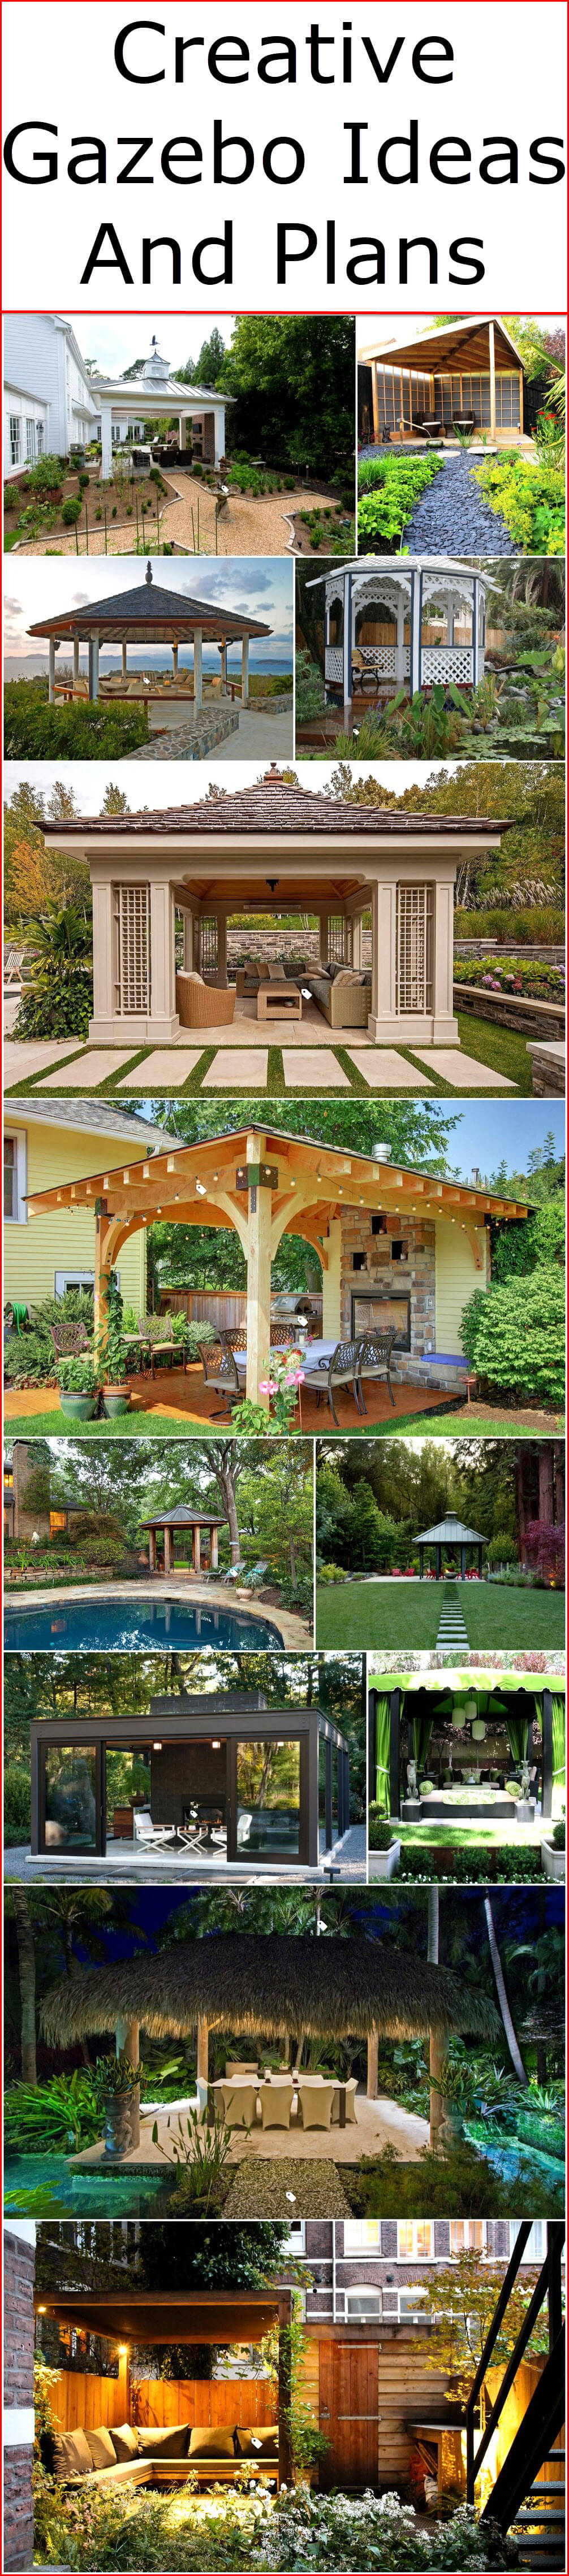 Creative Gazebo Ideas And Plans